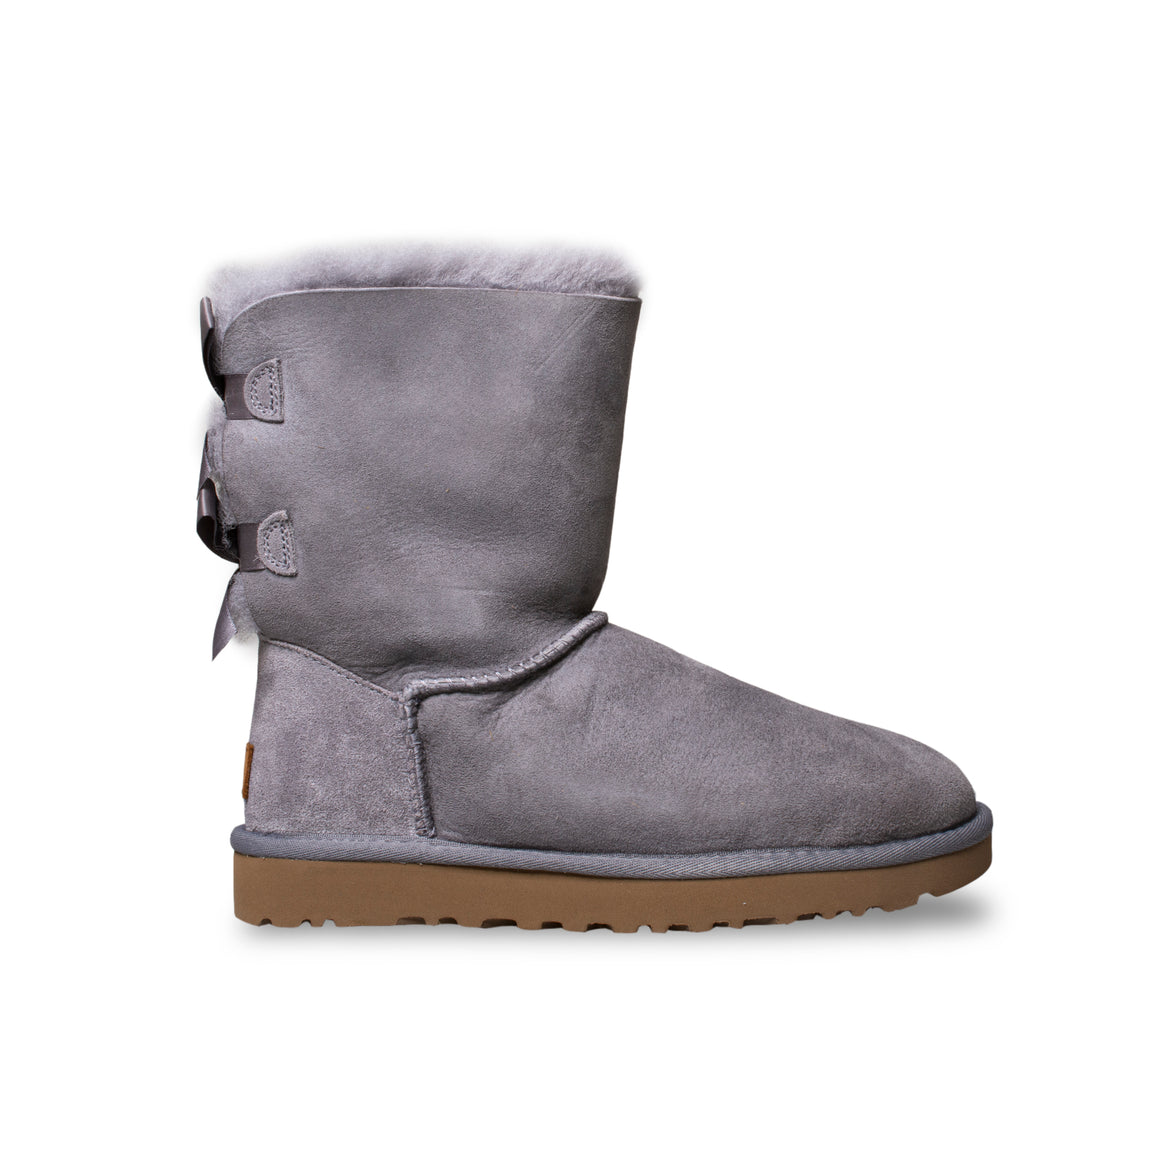 UGG Bailey Bow II GULL Boots - Women's